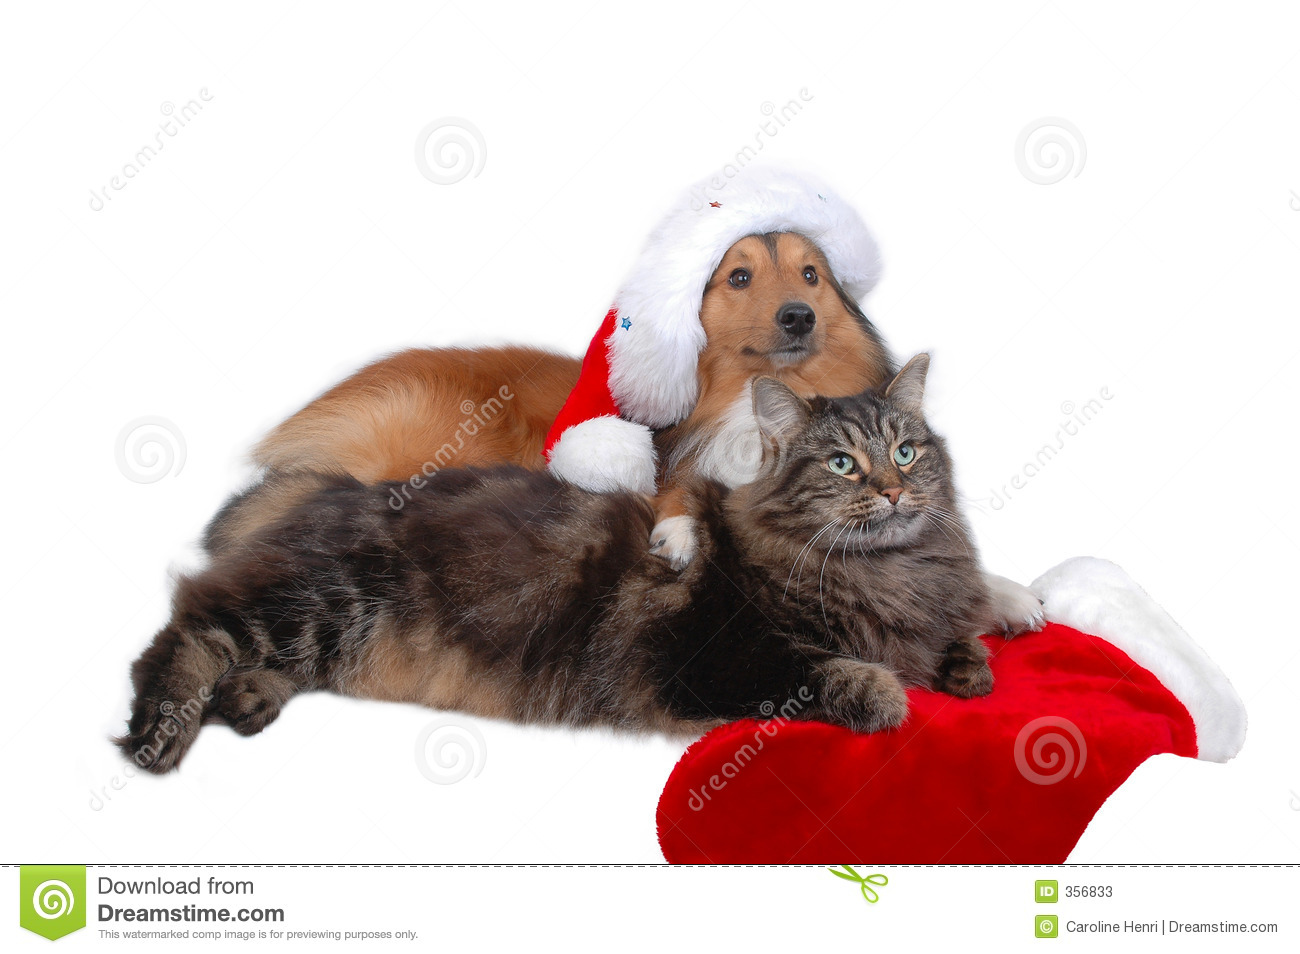 1 831 Christmas Cat Dog Photos Free Royalty Free Stock Photos From Dreamstime